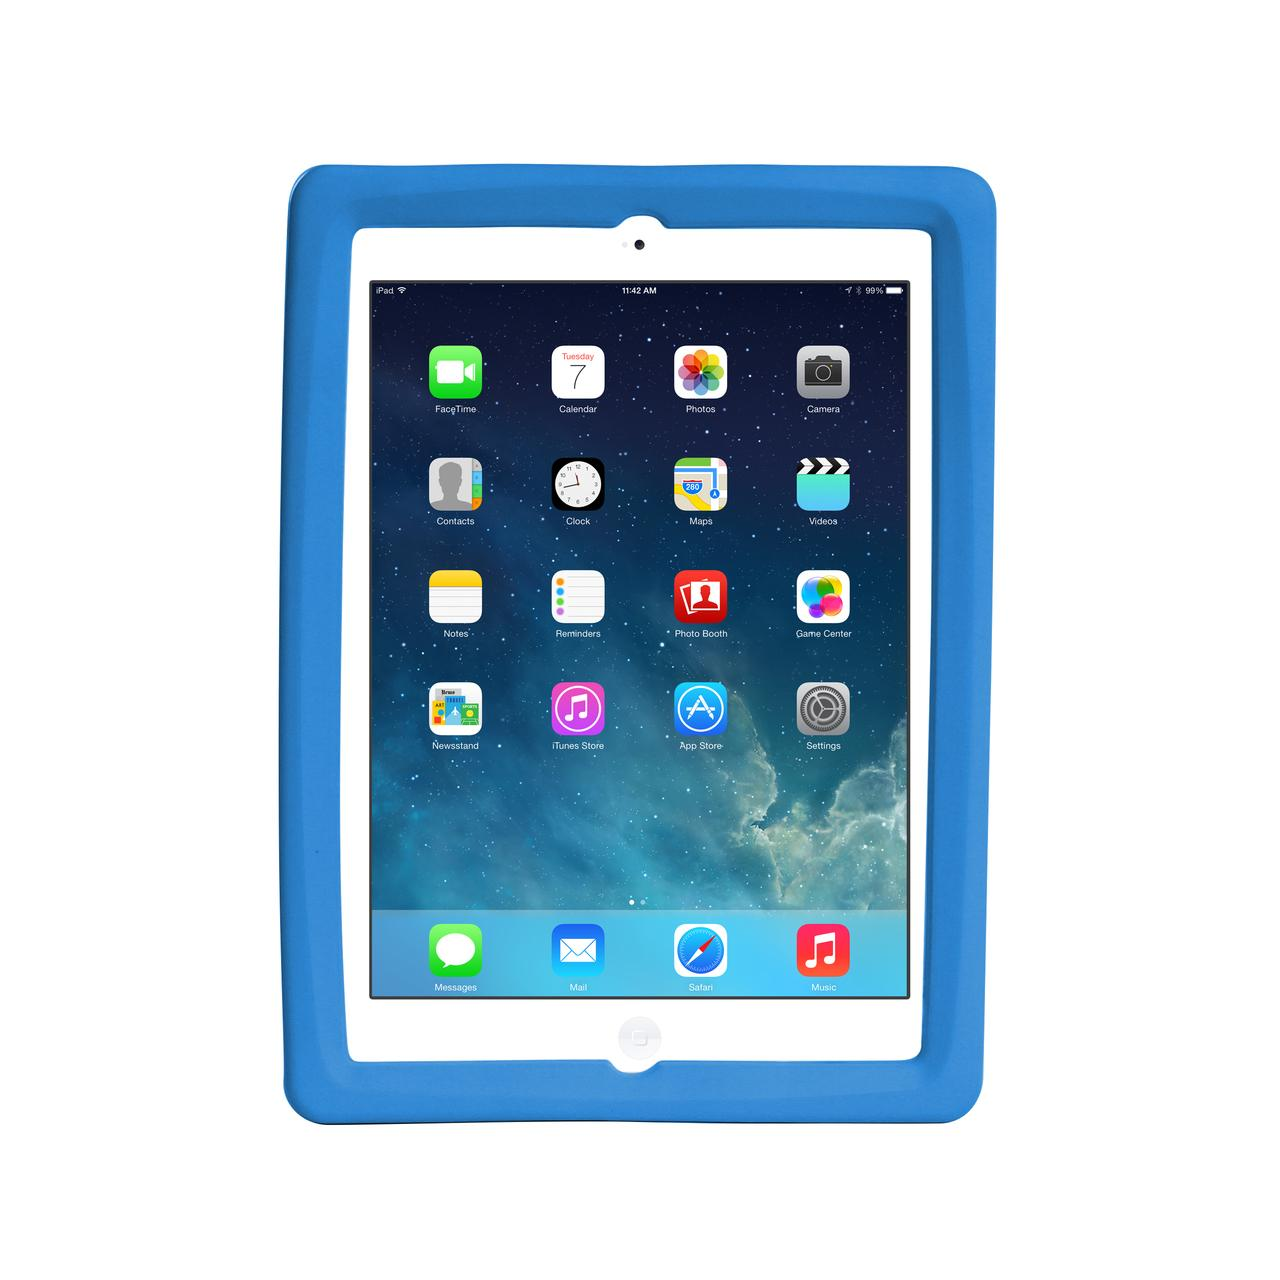 Big Grips Slim Case Blue Bulk for iPad 9.7 2018/iPad 9.7 2017/iPad Air 2/Air